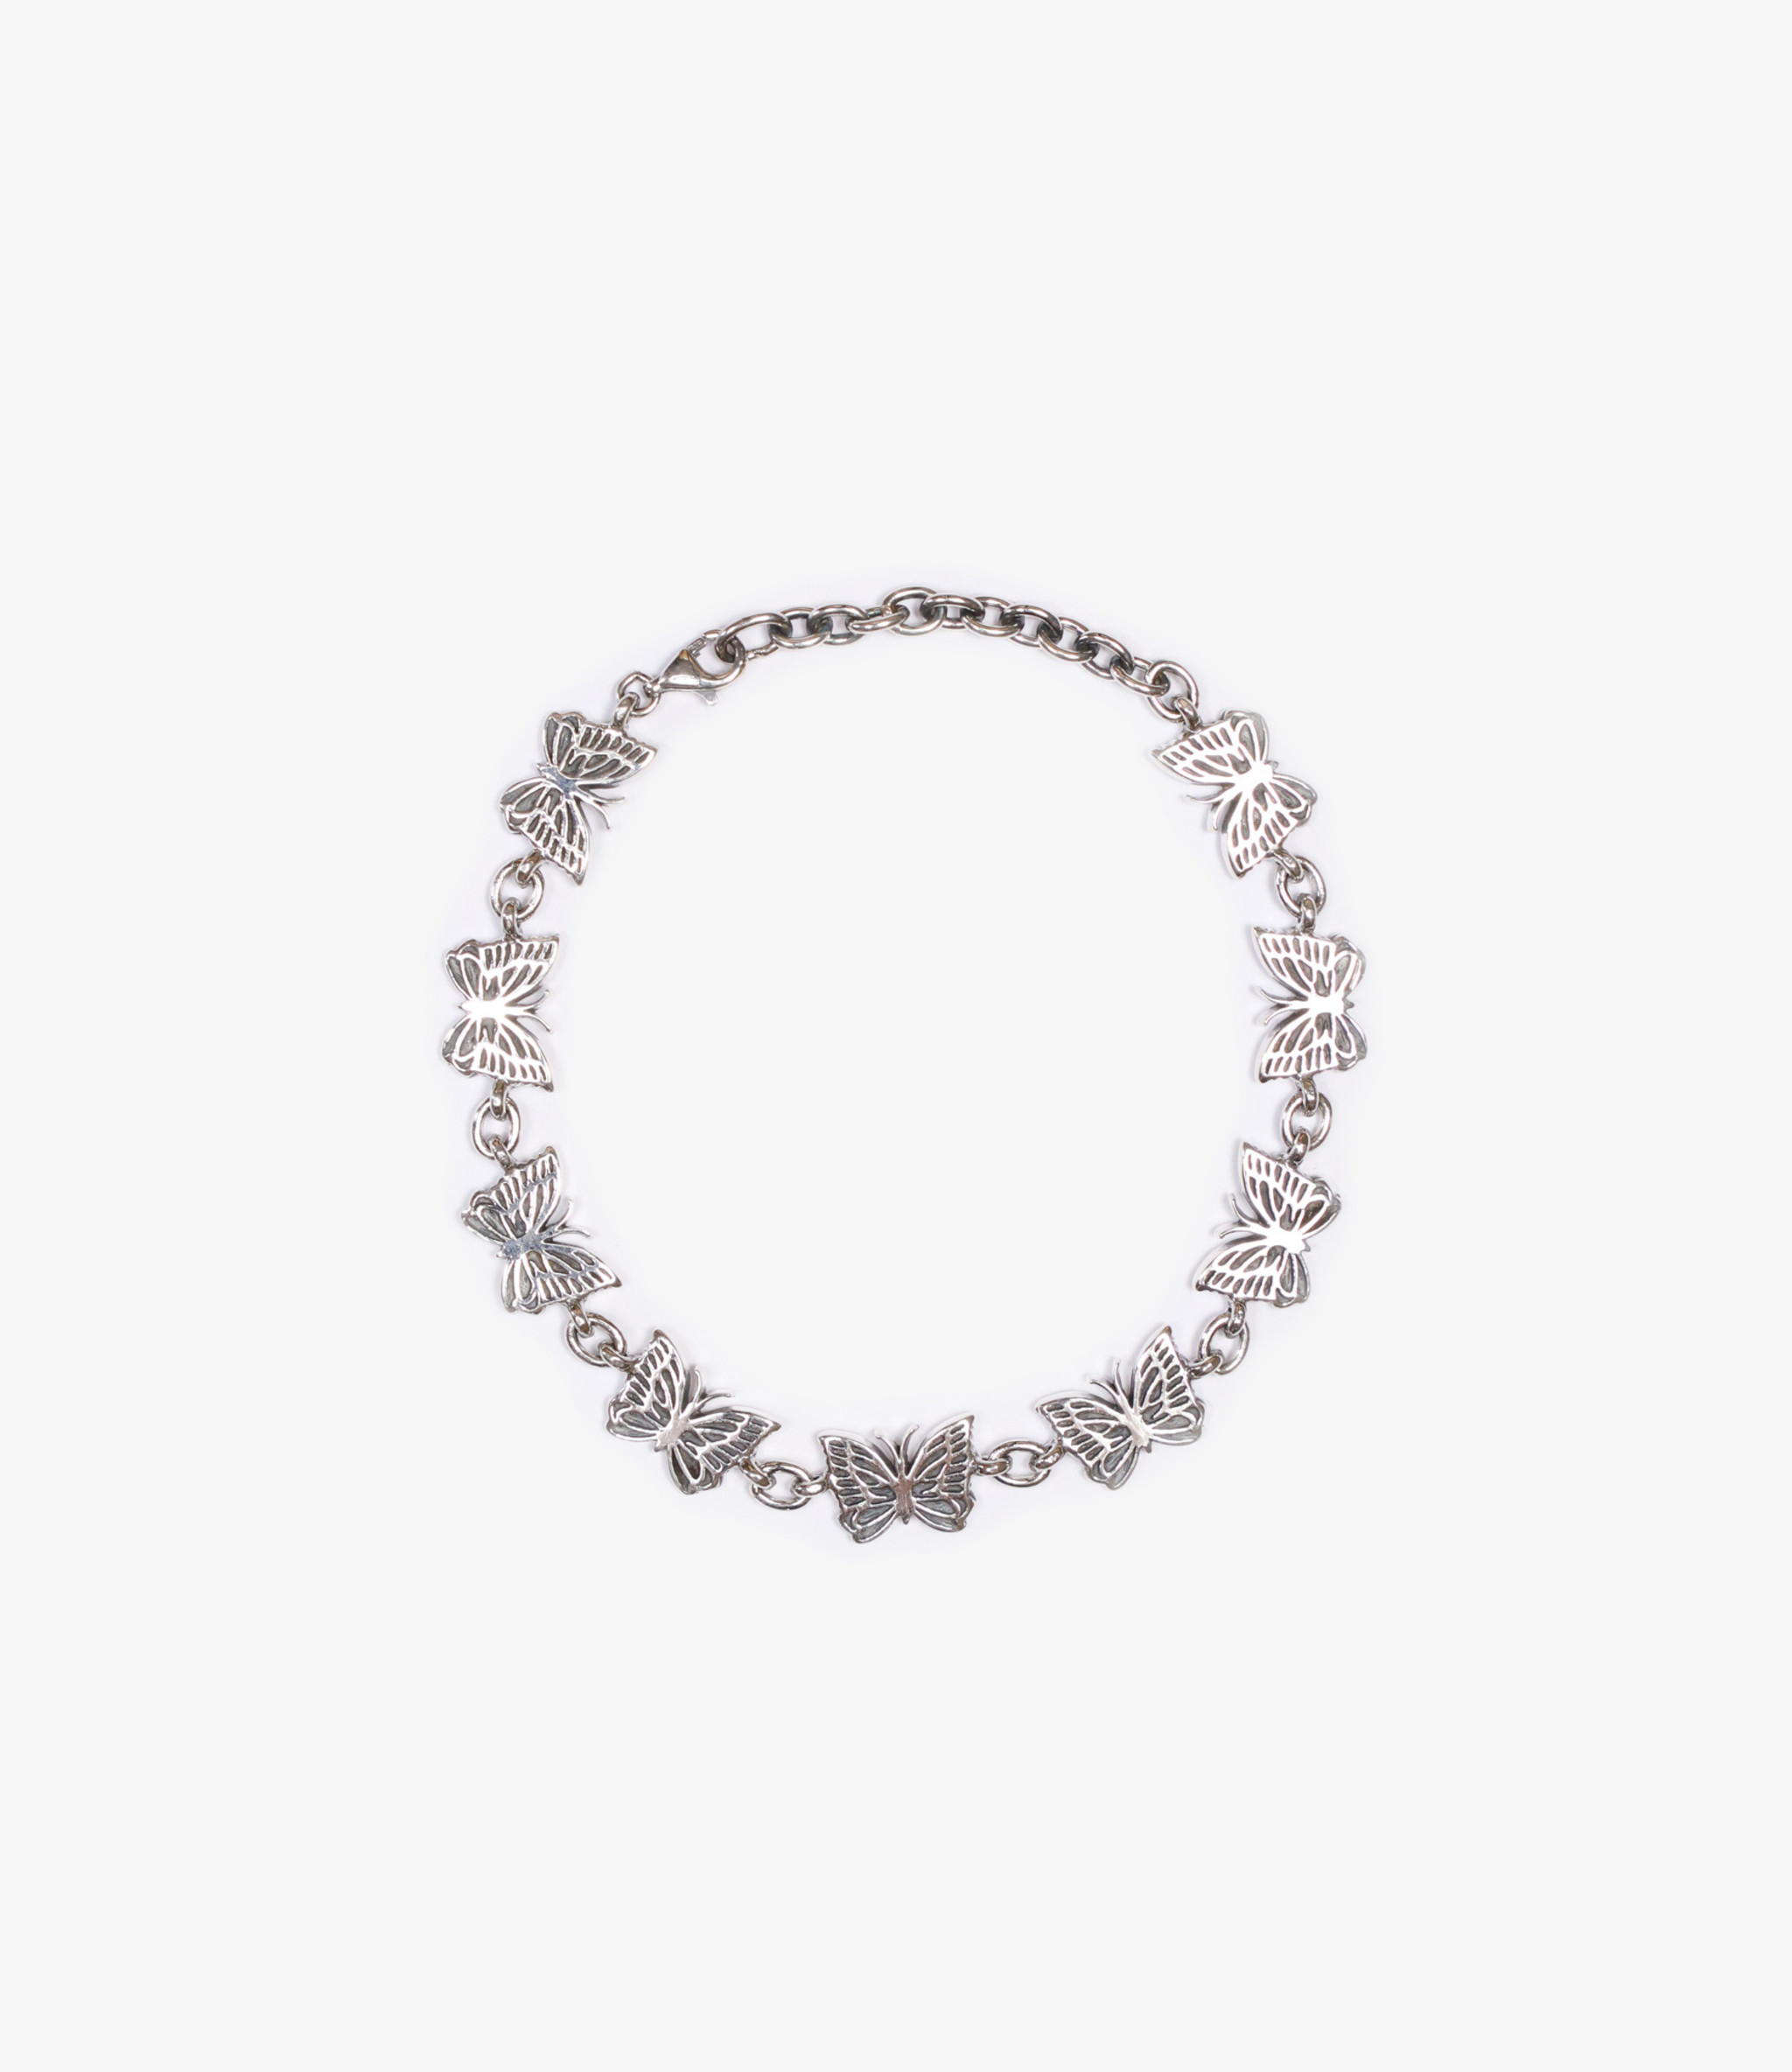 Needles Bracelet - 925 Silver - Papillon Medium